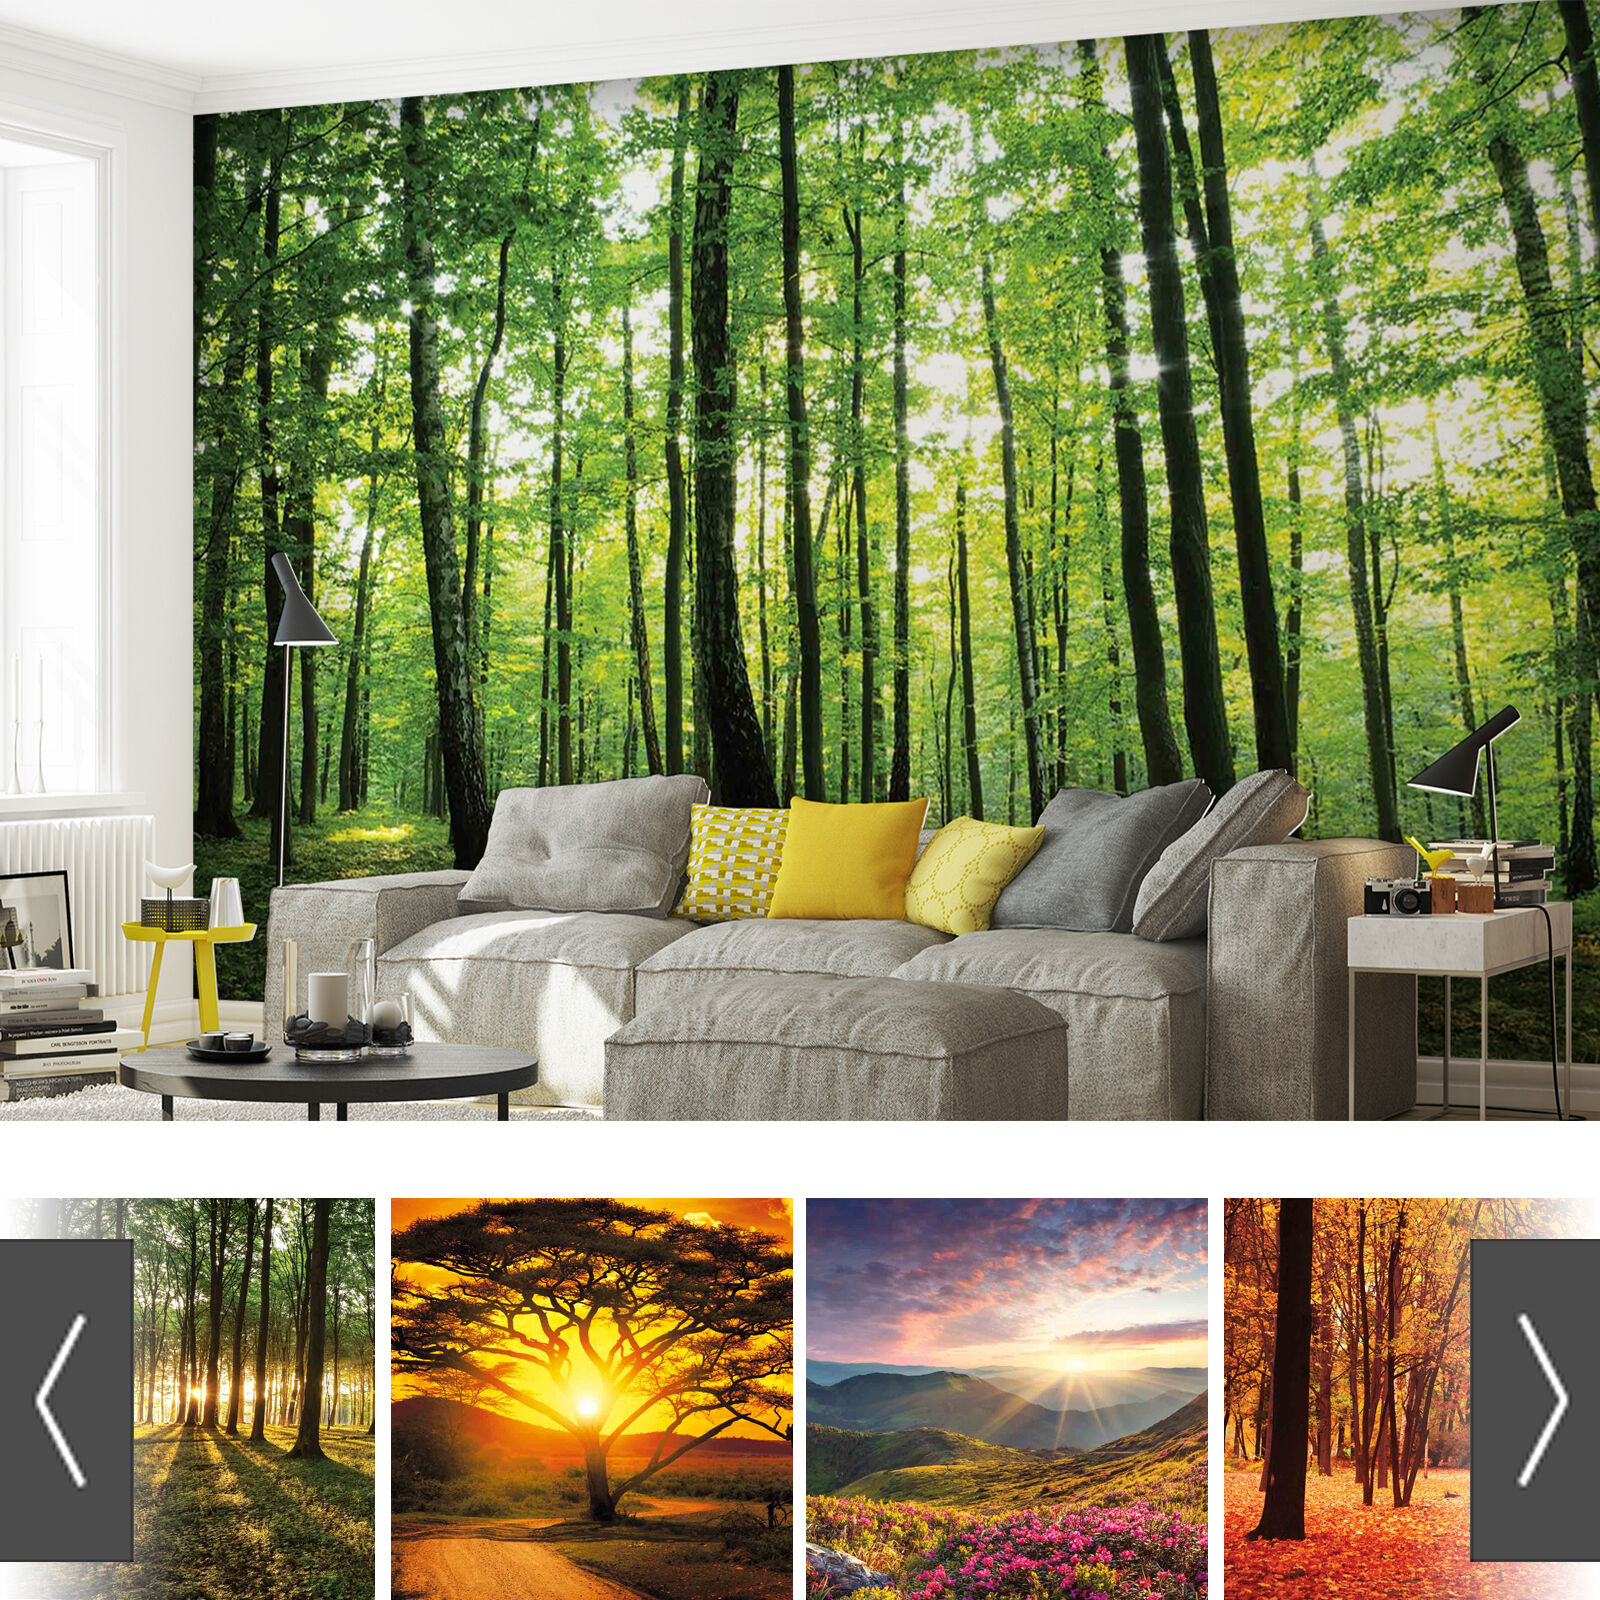 Forest Wood Nature Wall Mural Photo Wallpaper Xxl 20